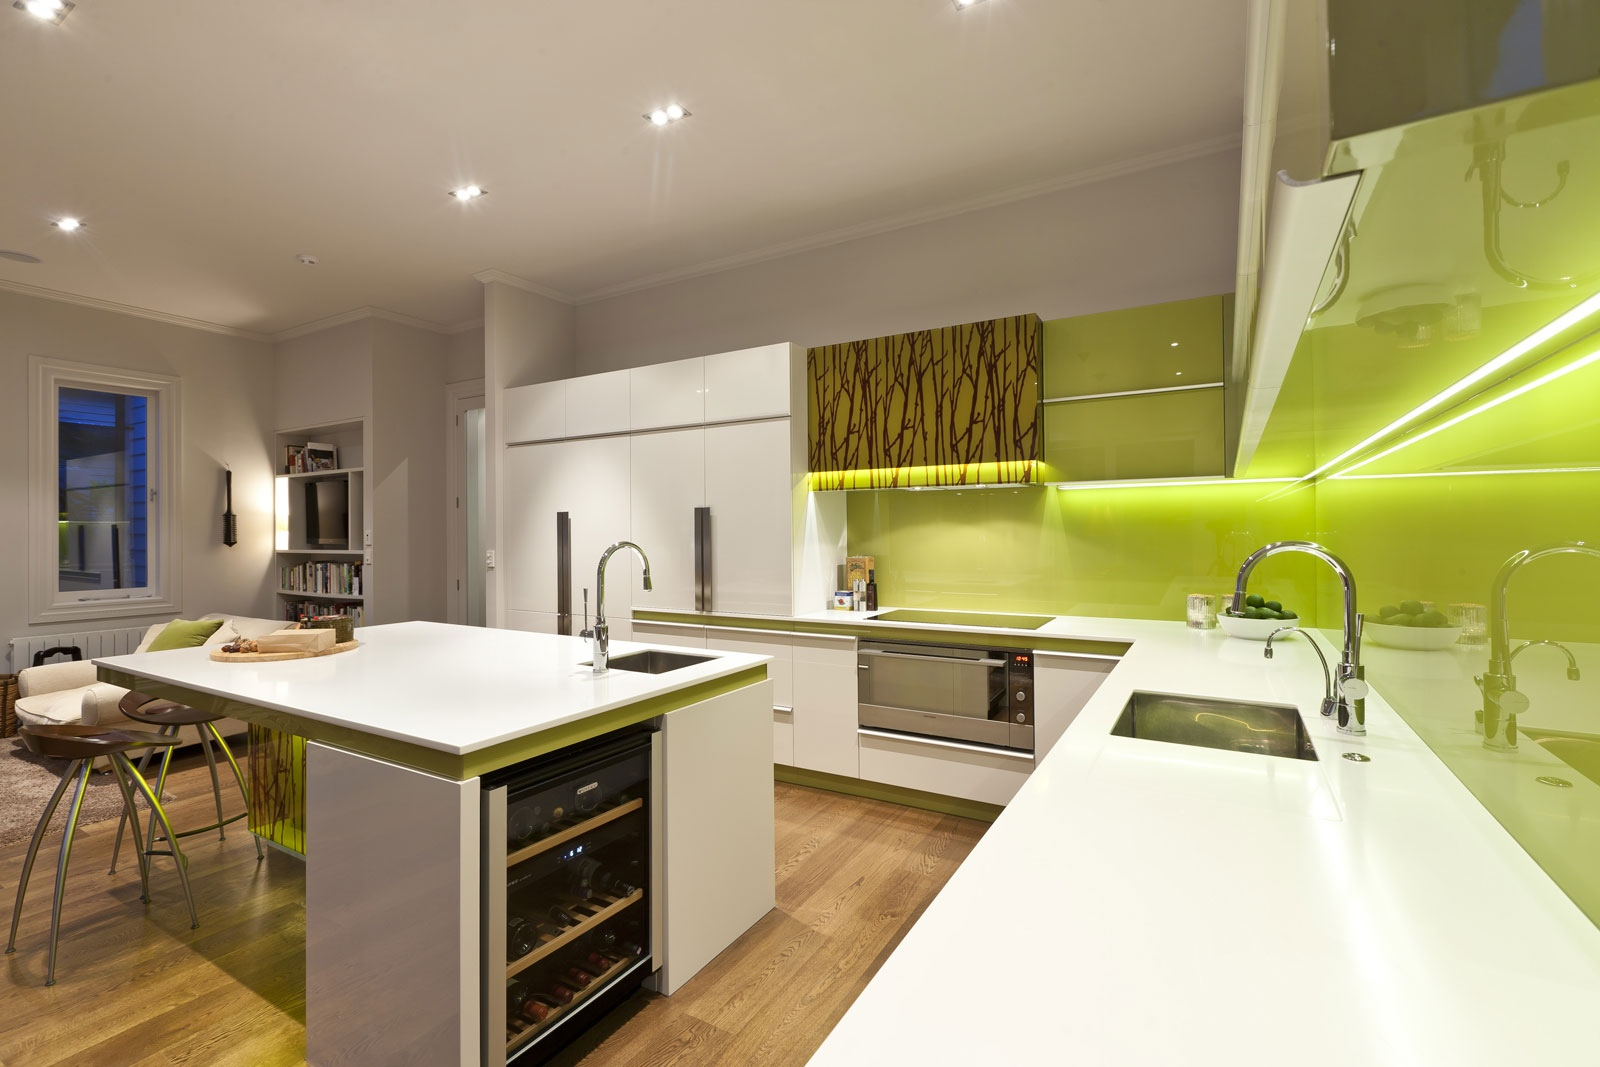 Modern Kitchen Designs 2013 : Light filled modern kitchens by mal corboy